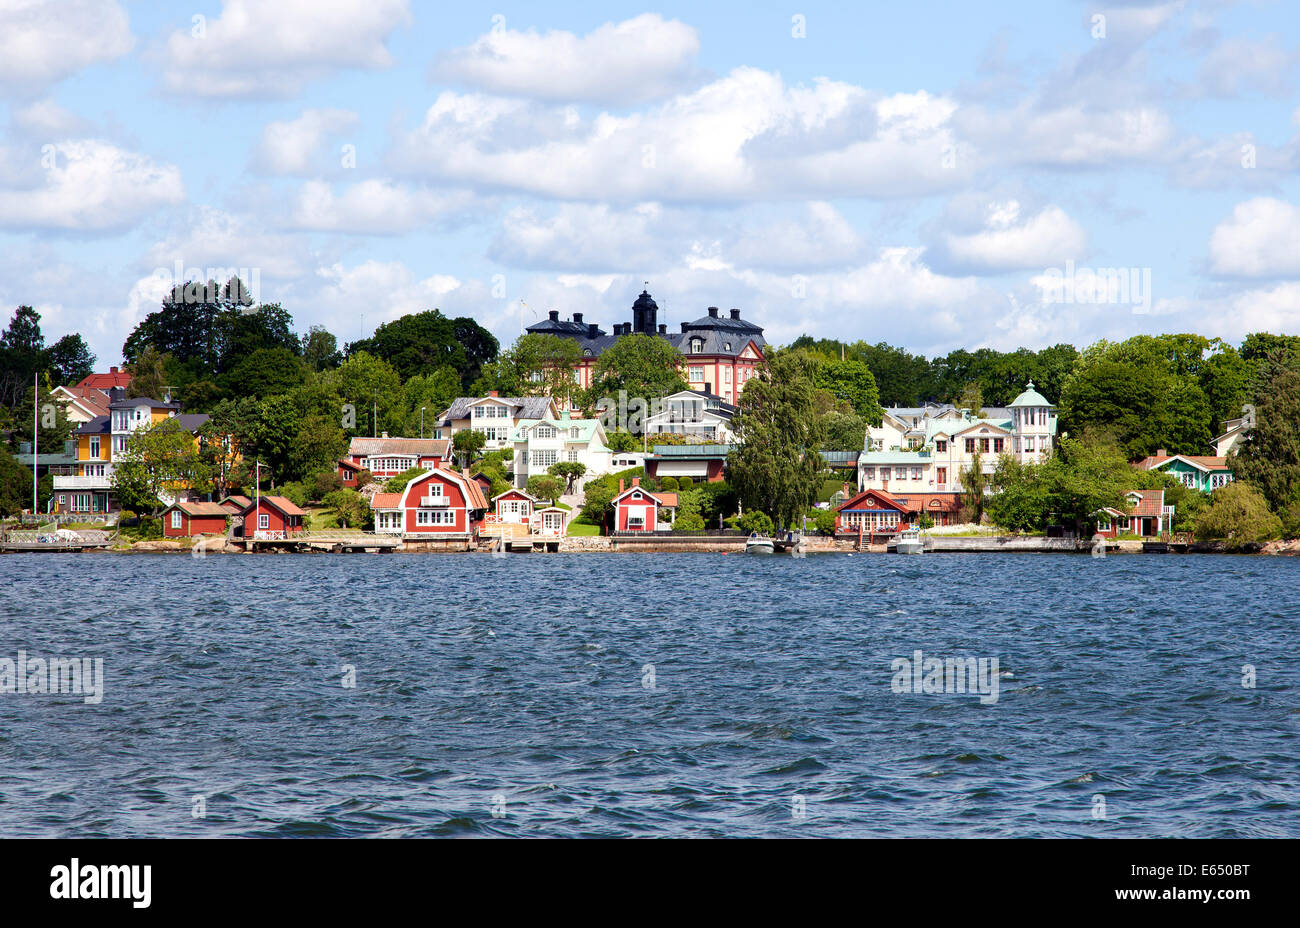 Wooden residential buildings, Vaxholm, Stockholm archipelago, Stockholm, Stockholm County, Sweden Stock Photo